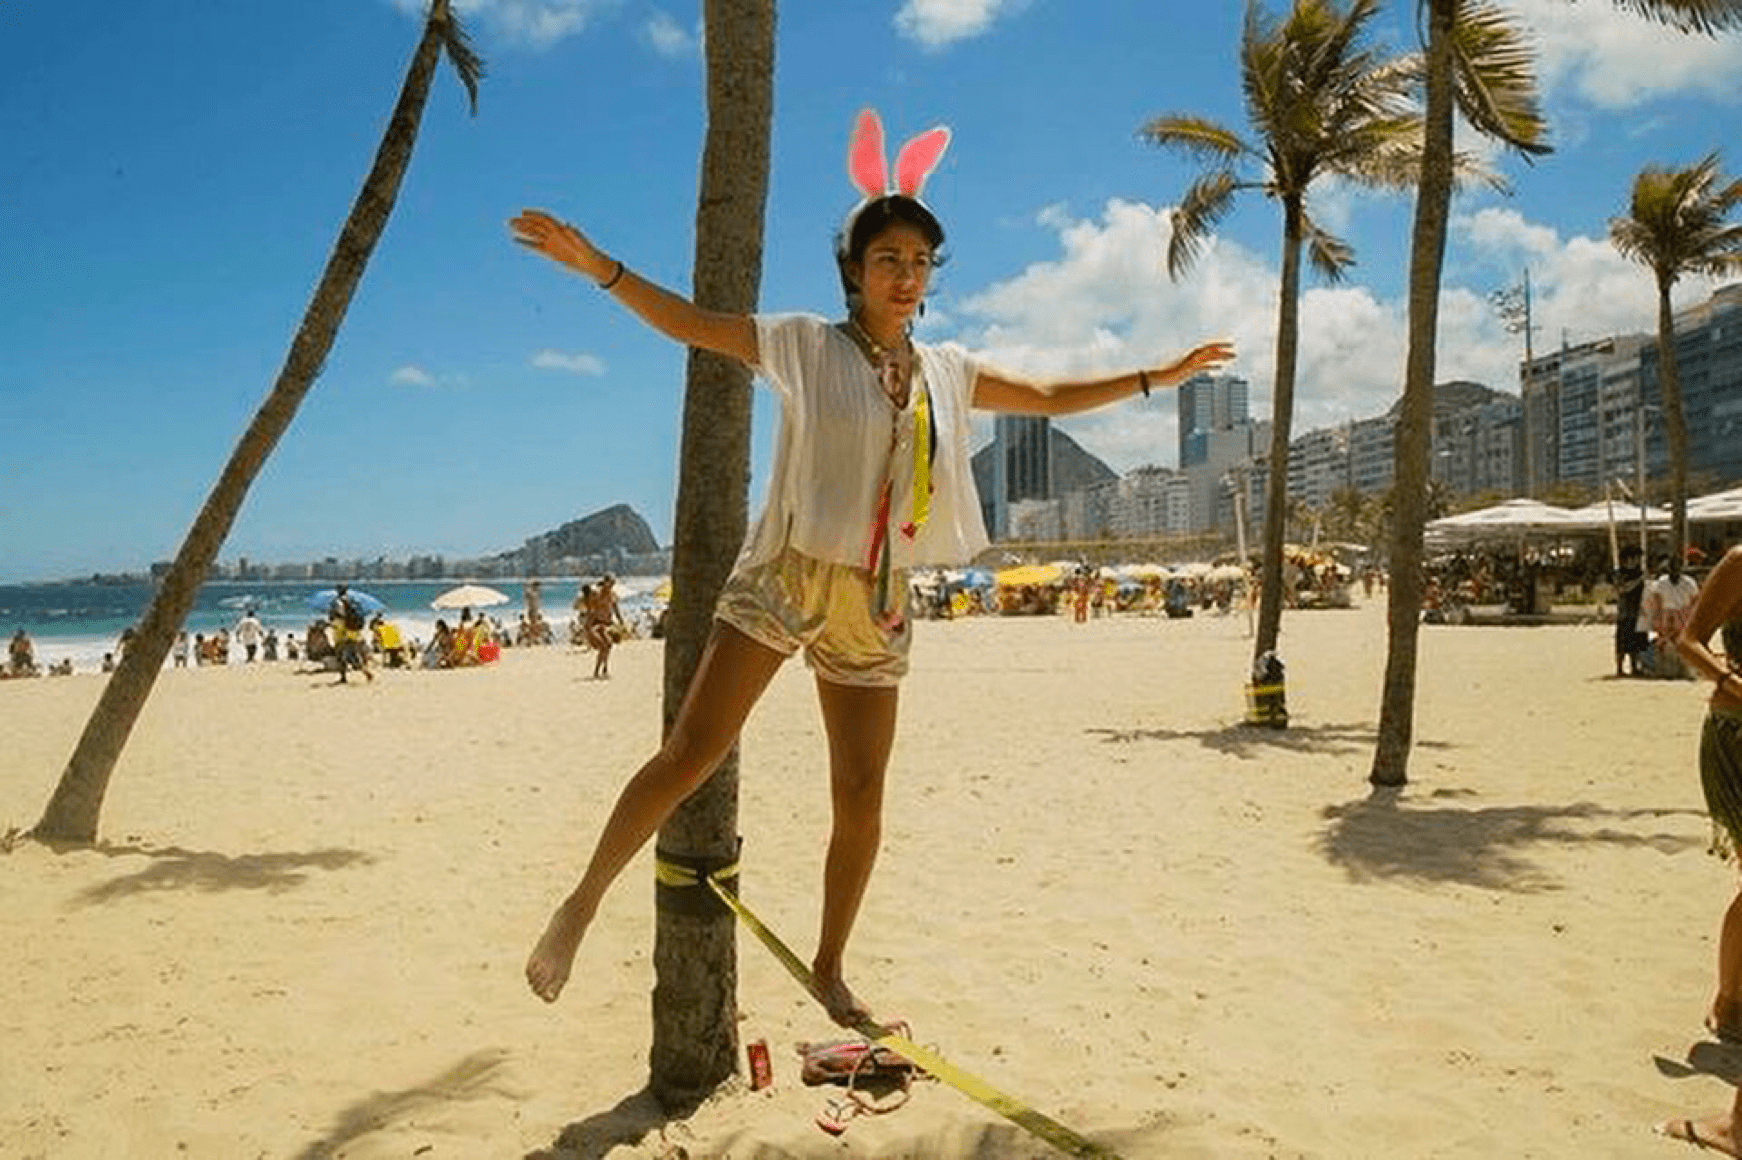 Esperanza walking on a low-to-the-ground tightrope on a beach in Rio de Janeiro